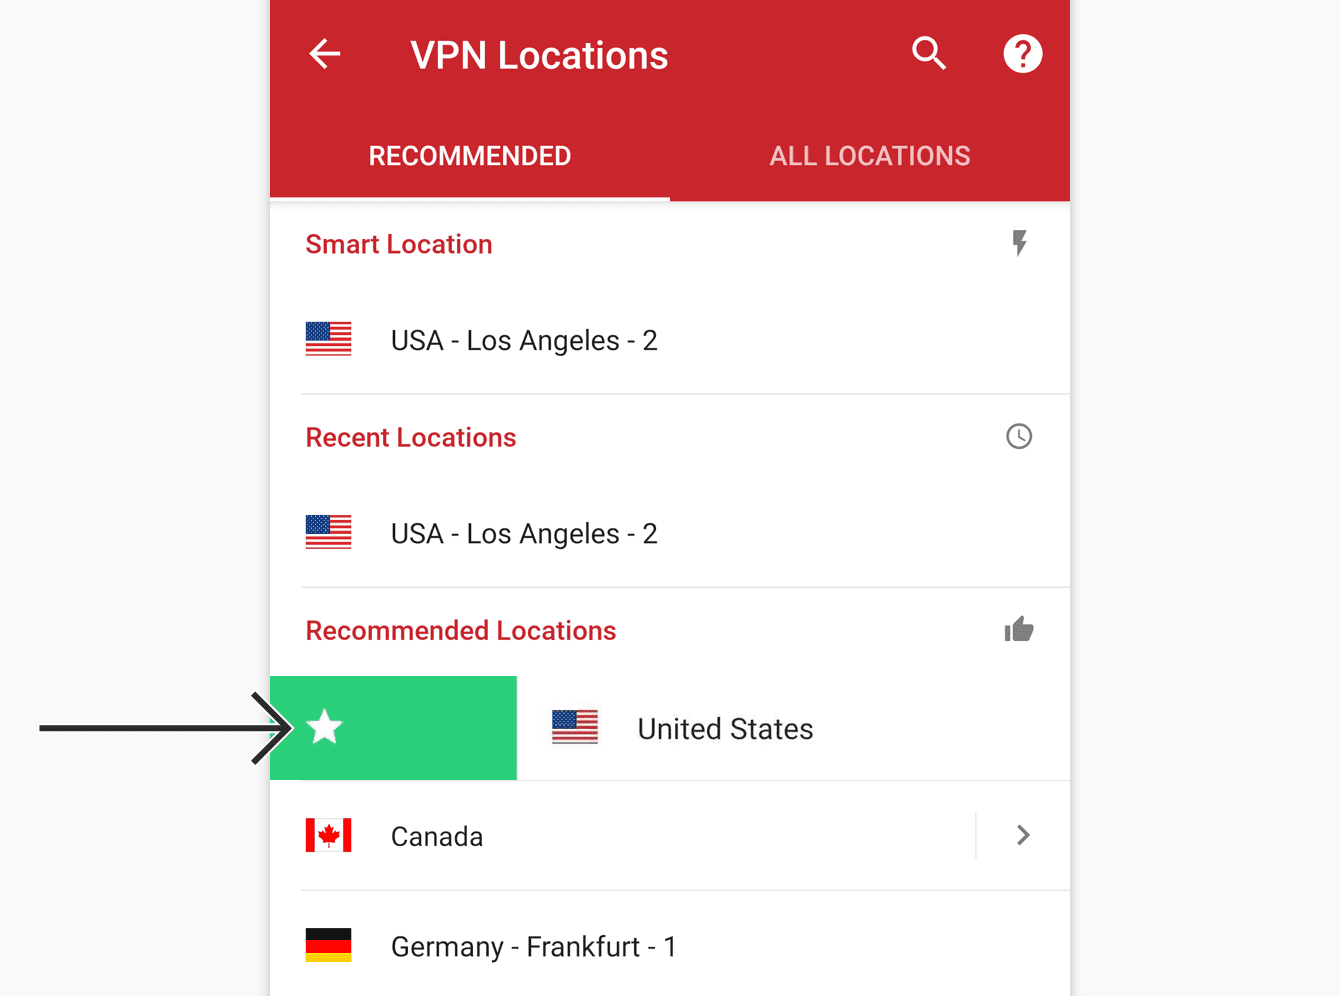 To add a location to your favorites, drag it to the right.